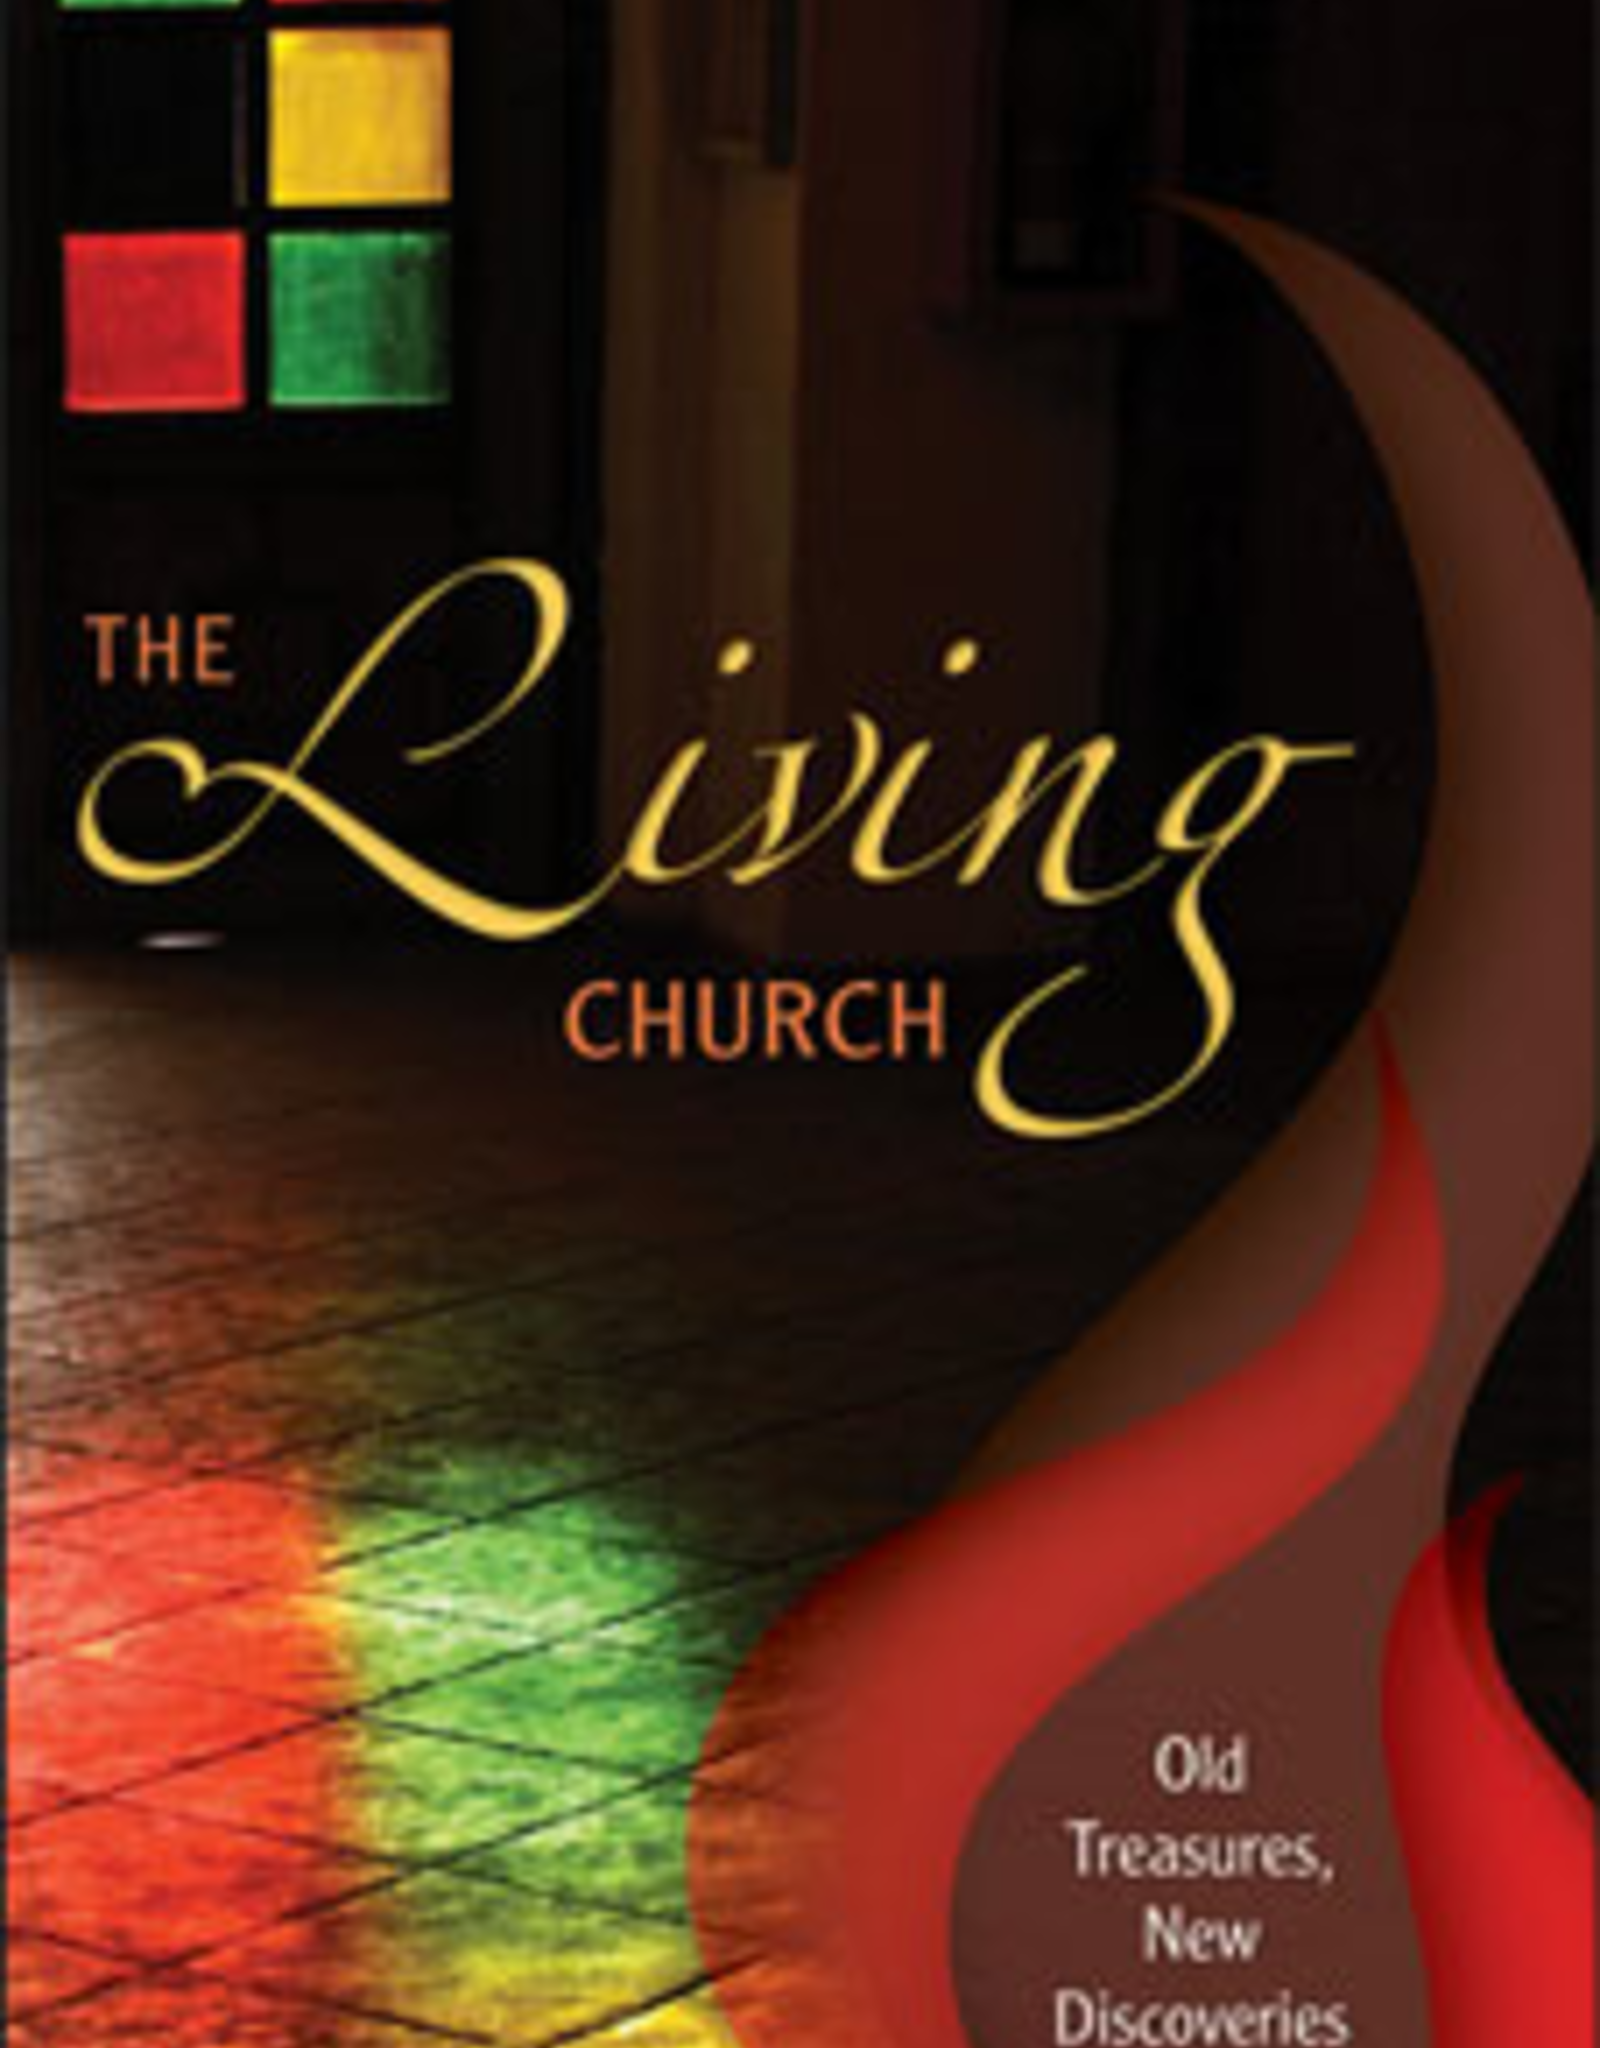 Liguori Press The Living Church: Old Treasures, New Discoveries, by Christopher M. Bellitto (paperback)